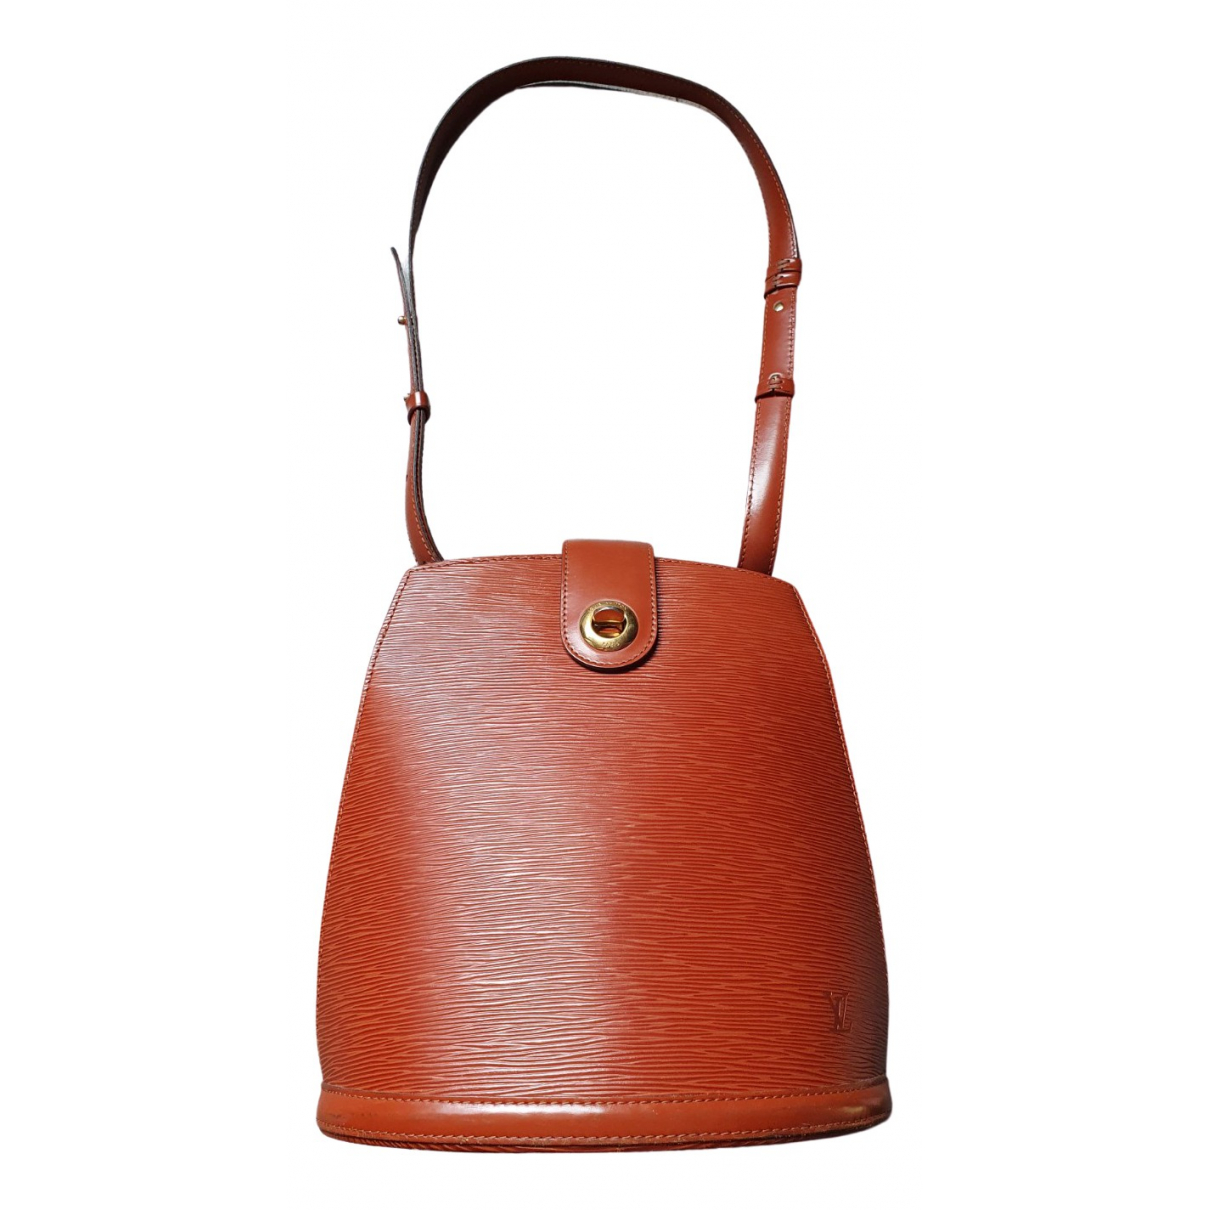 Louis Vuitton Cluny Vintage Brown Leather handbag for Women \N